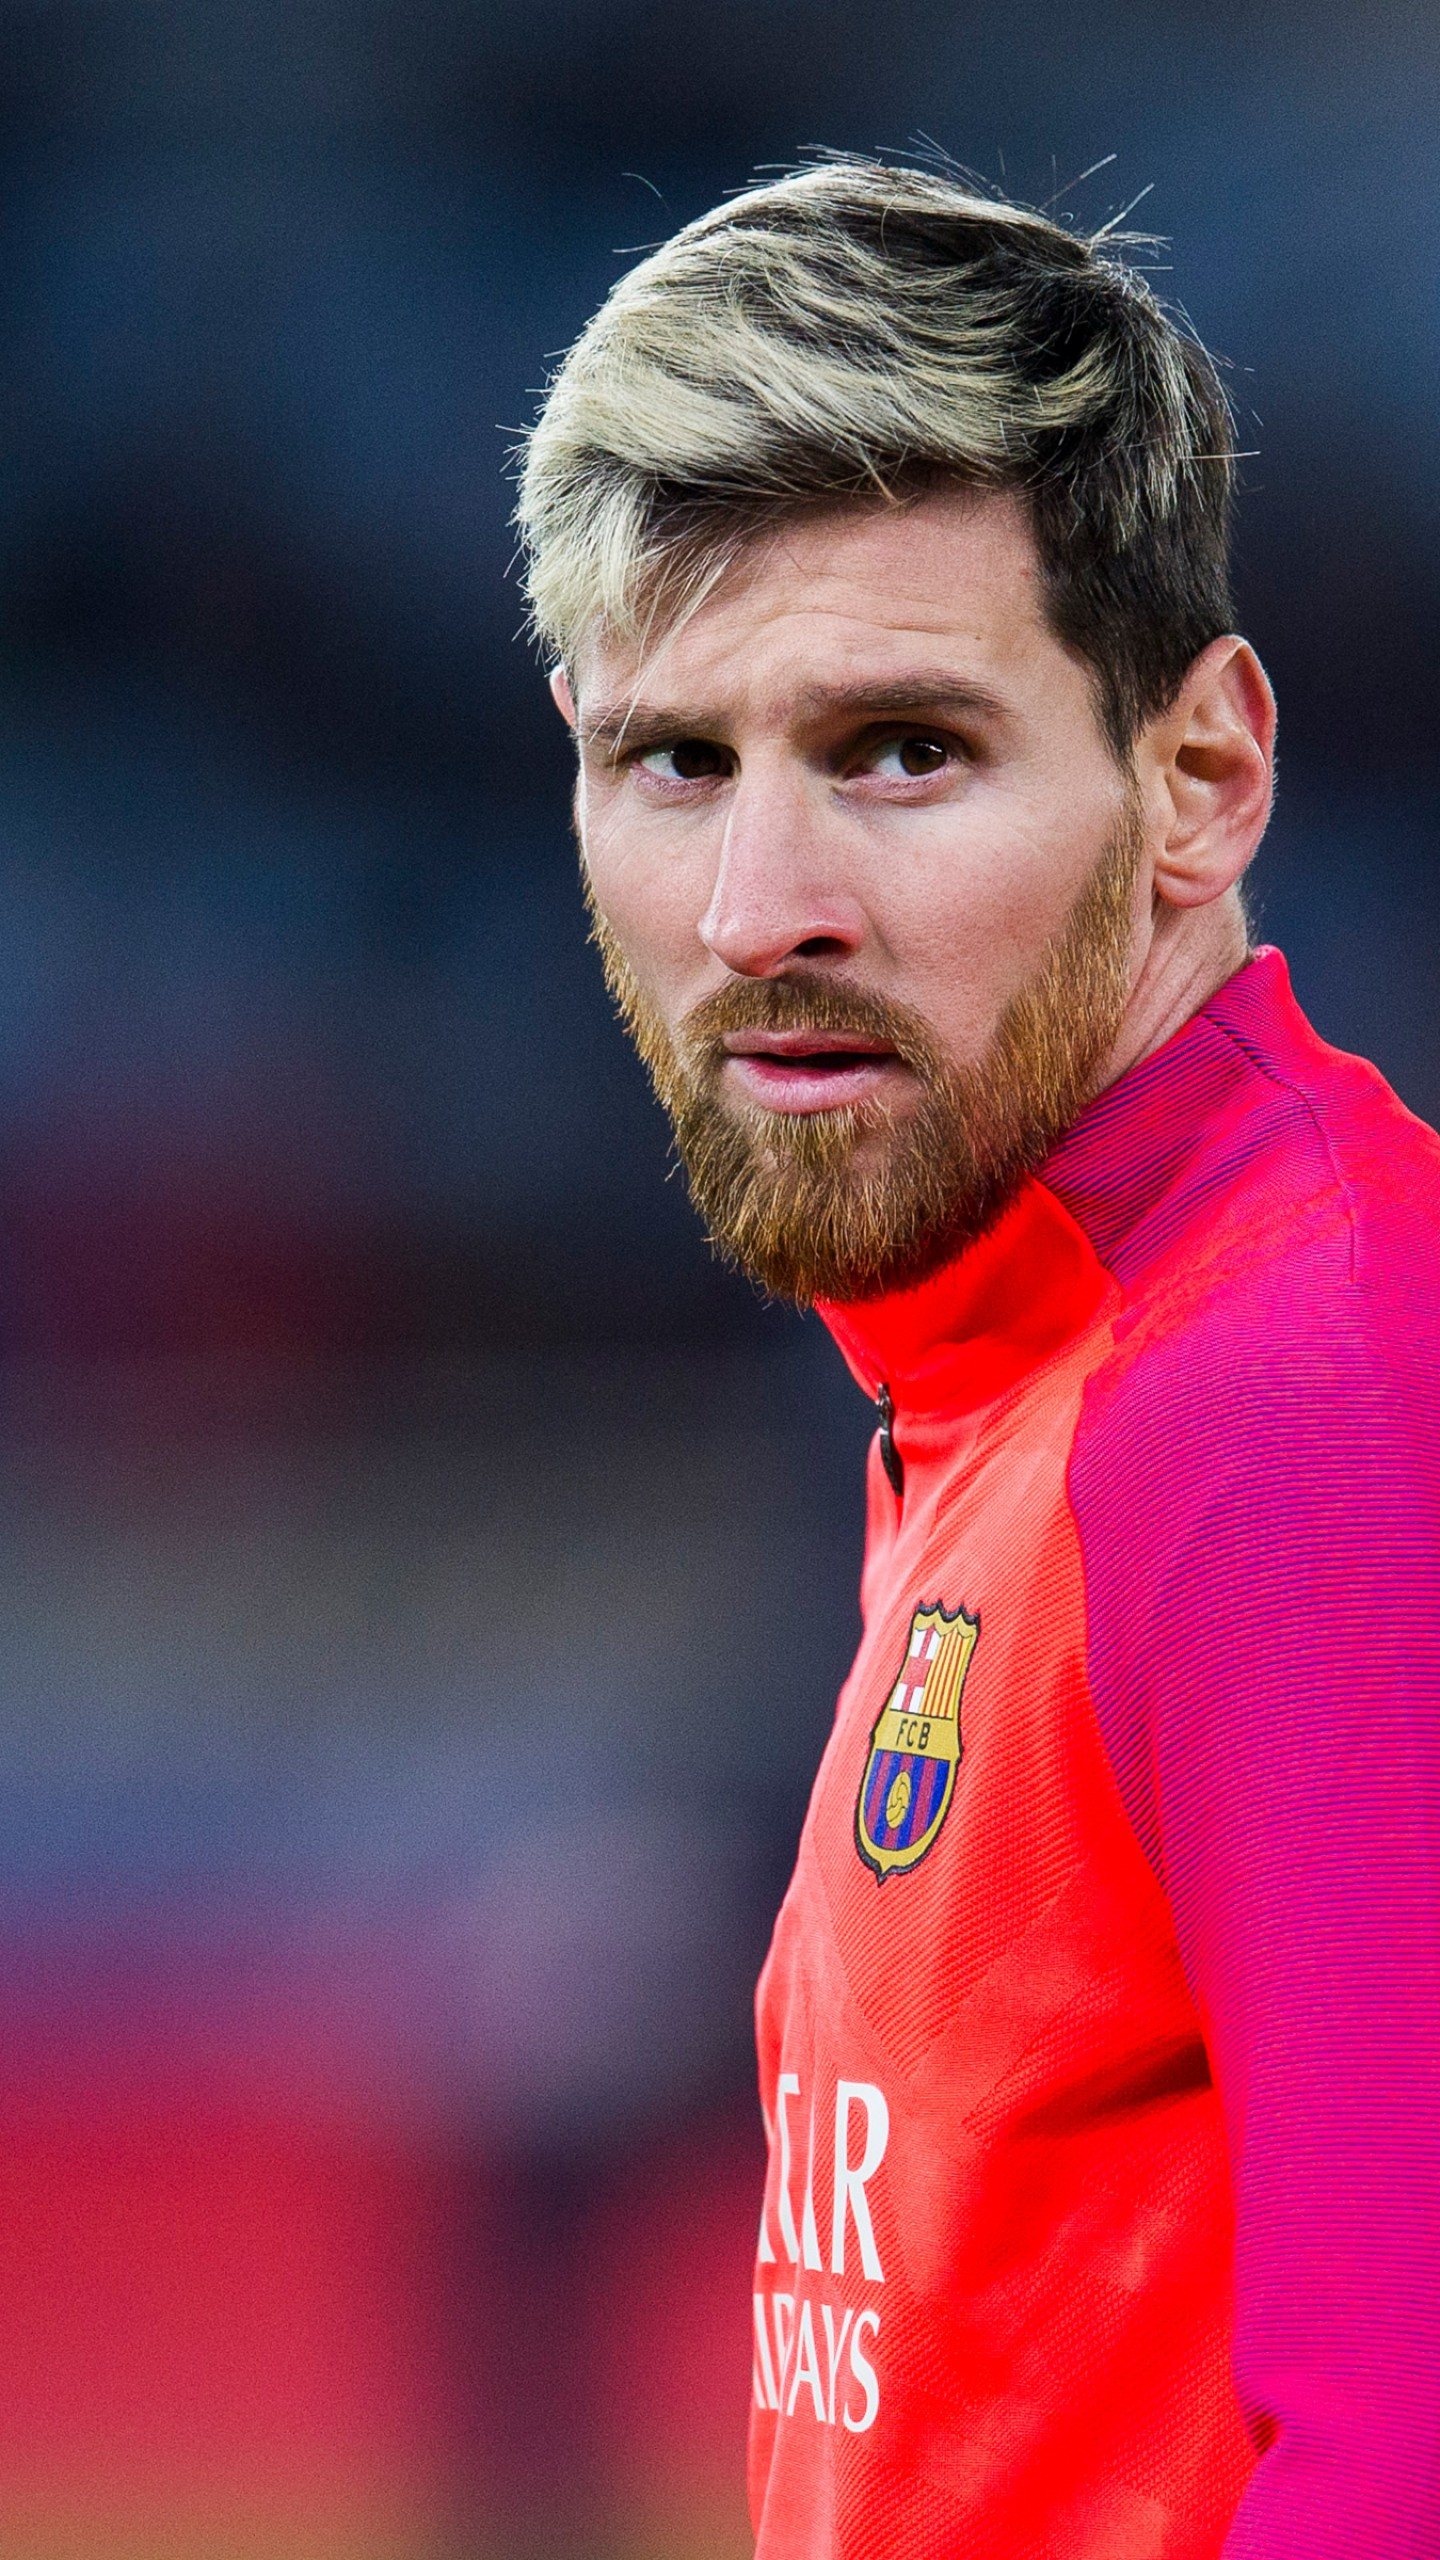 Facebook Wallpaper Quotes From Soccer Players Wallpaper Lionel Messi Barcelona Fcb Soccer 4k Sport